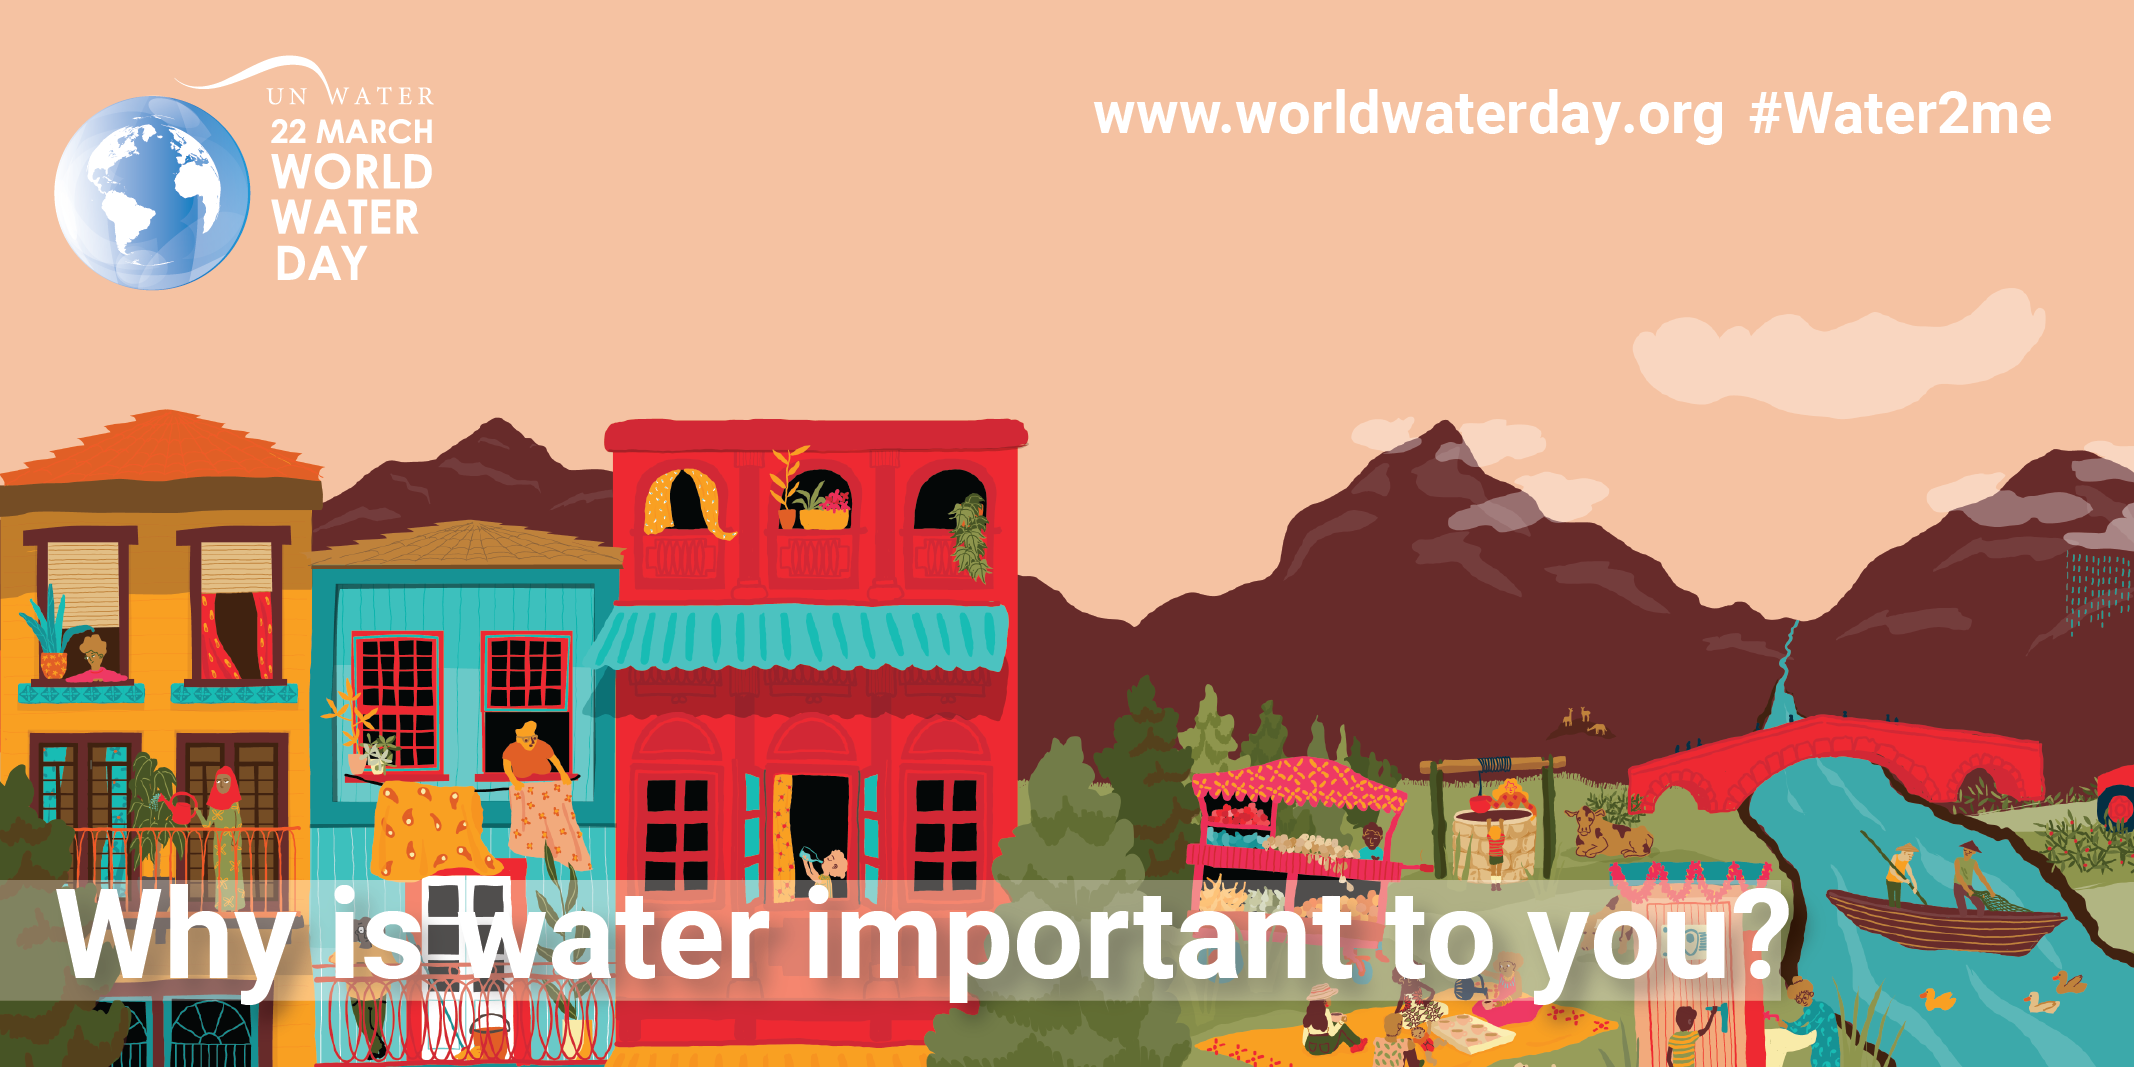 UN World Water Day March 22. Why is water important to you? Learn more at www.worldwaterday.org